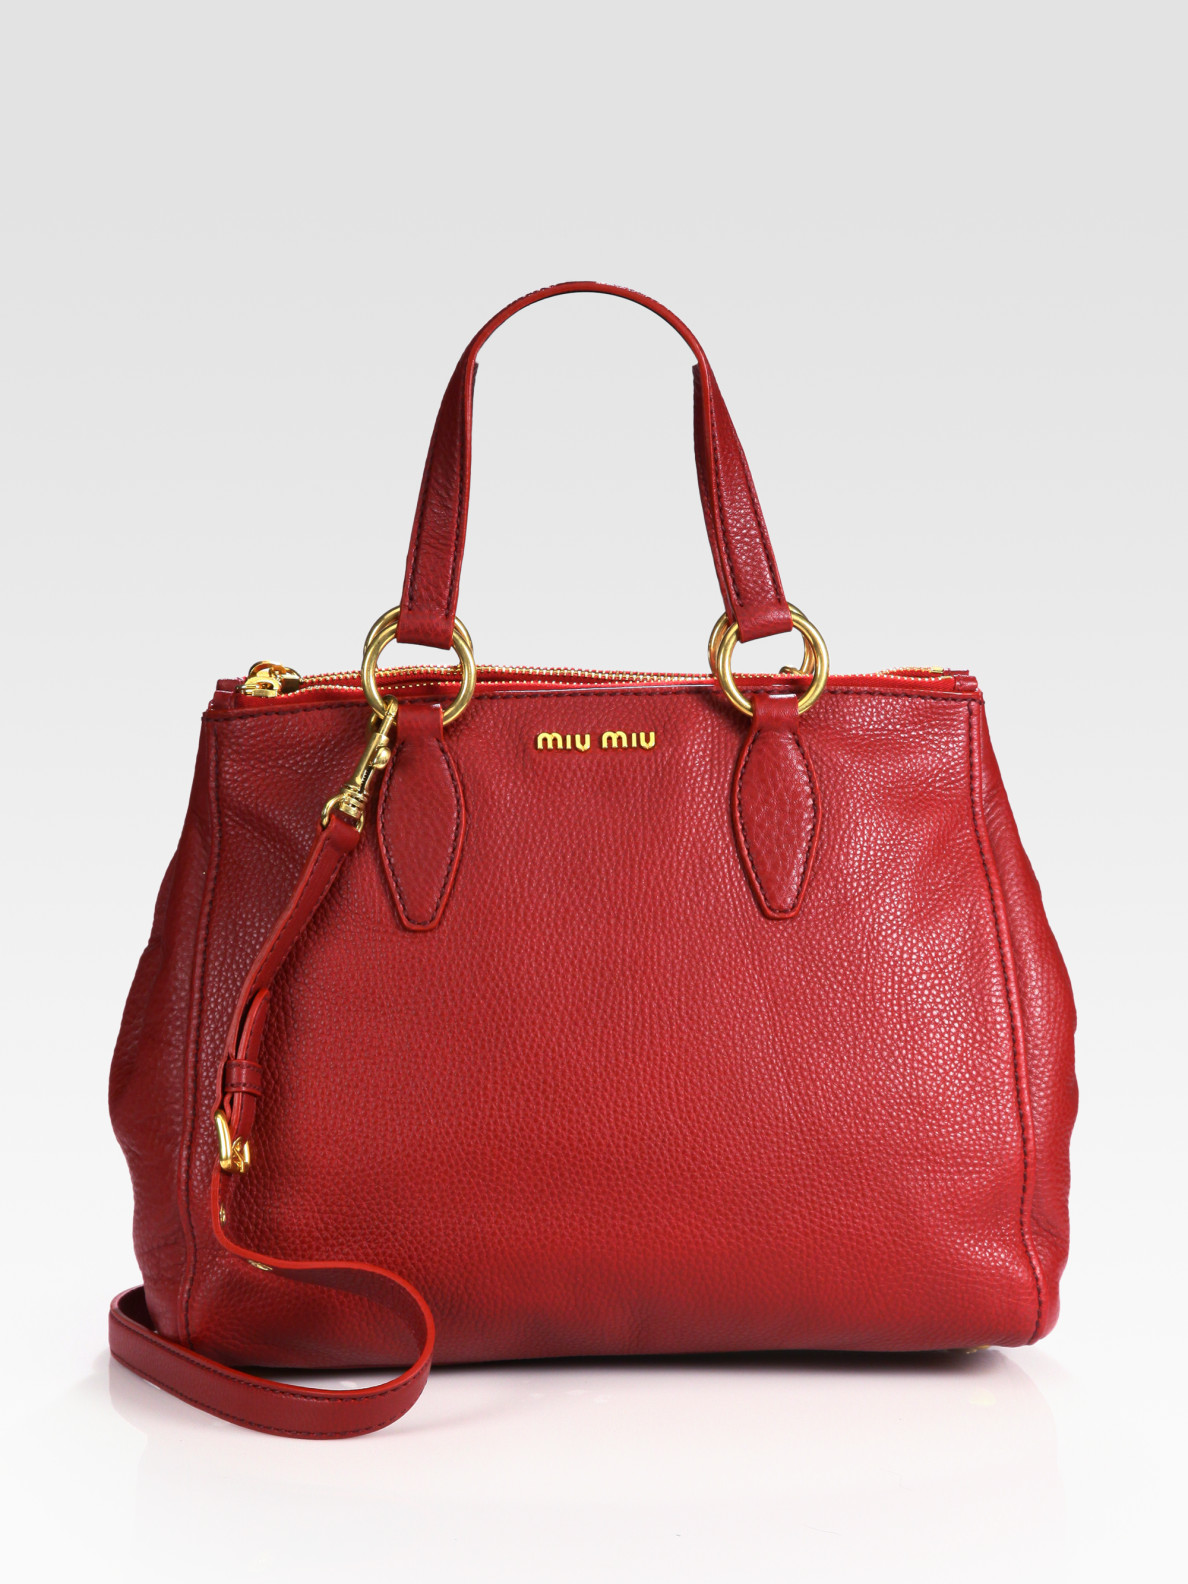 Miu Miu Vitello Caribou Top Handle Bag